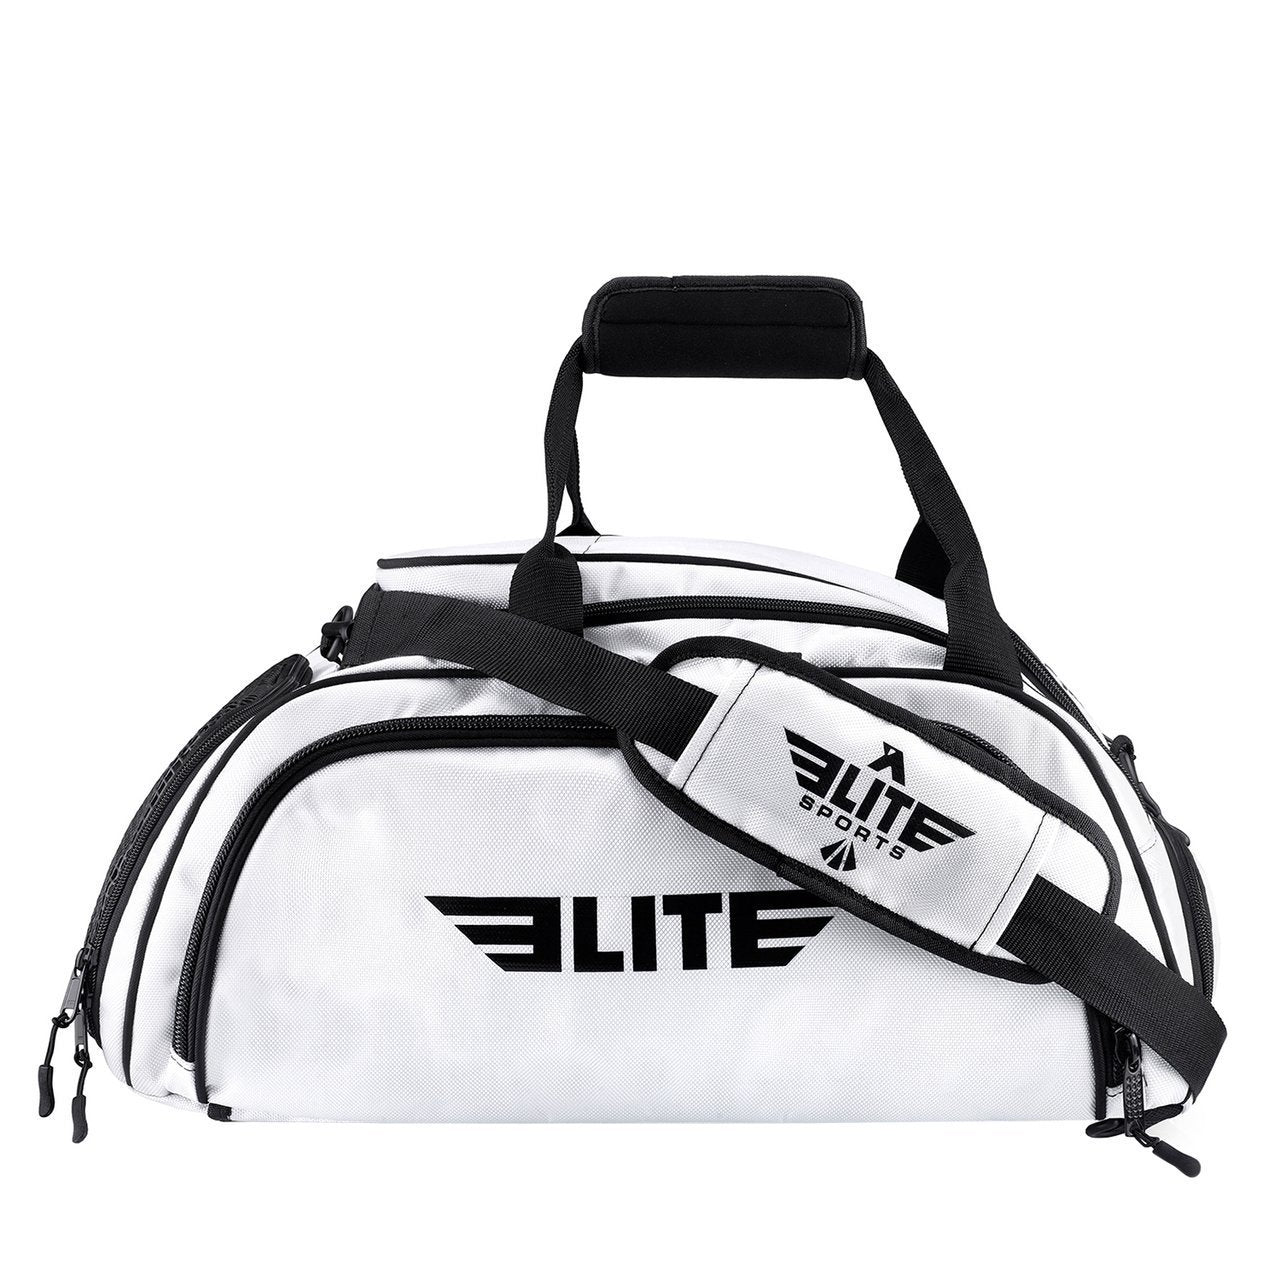 Elite Sports Warrior Series White Medium Duffel Brazilian Jiu Jitsu BJJ Gear Gym Bag & Backpack